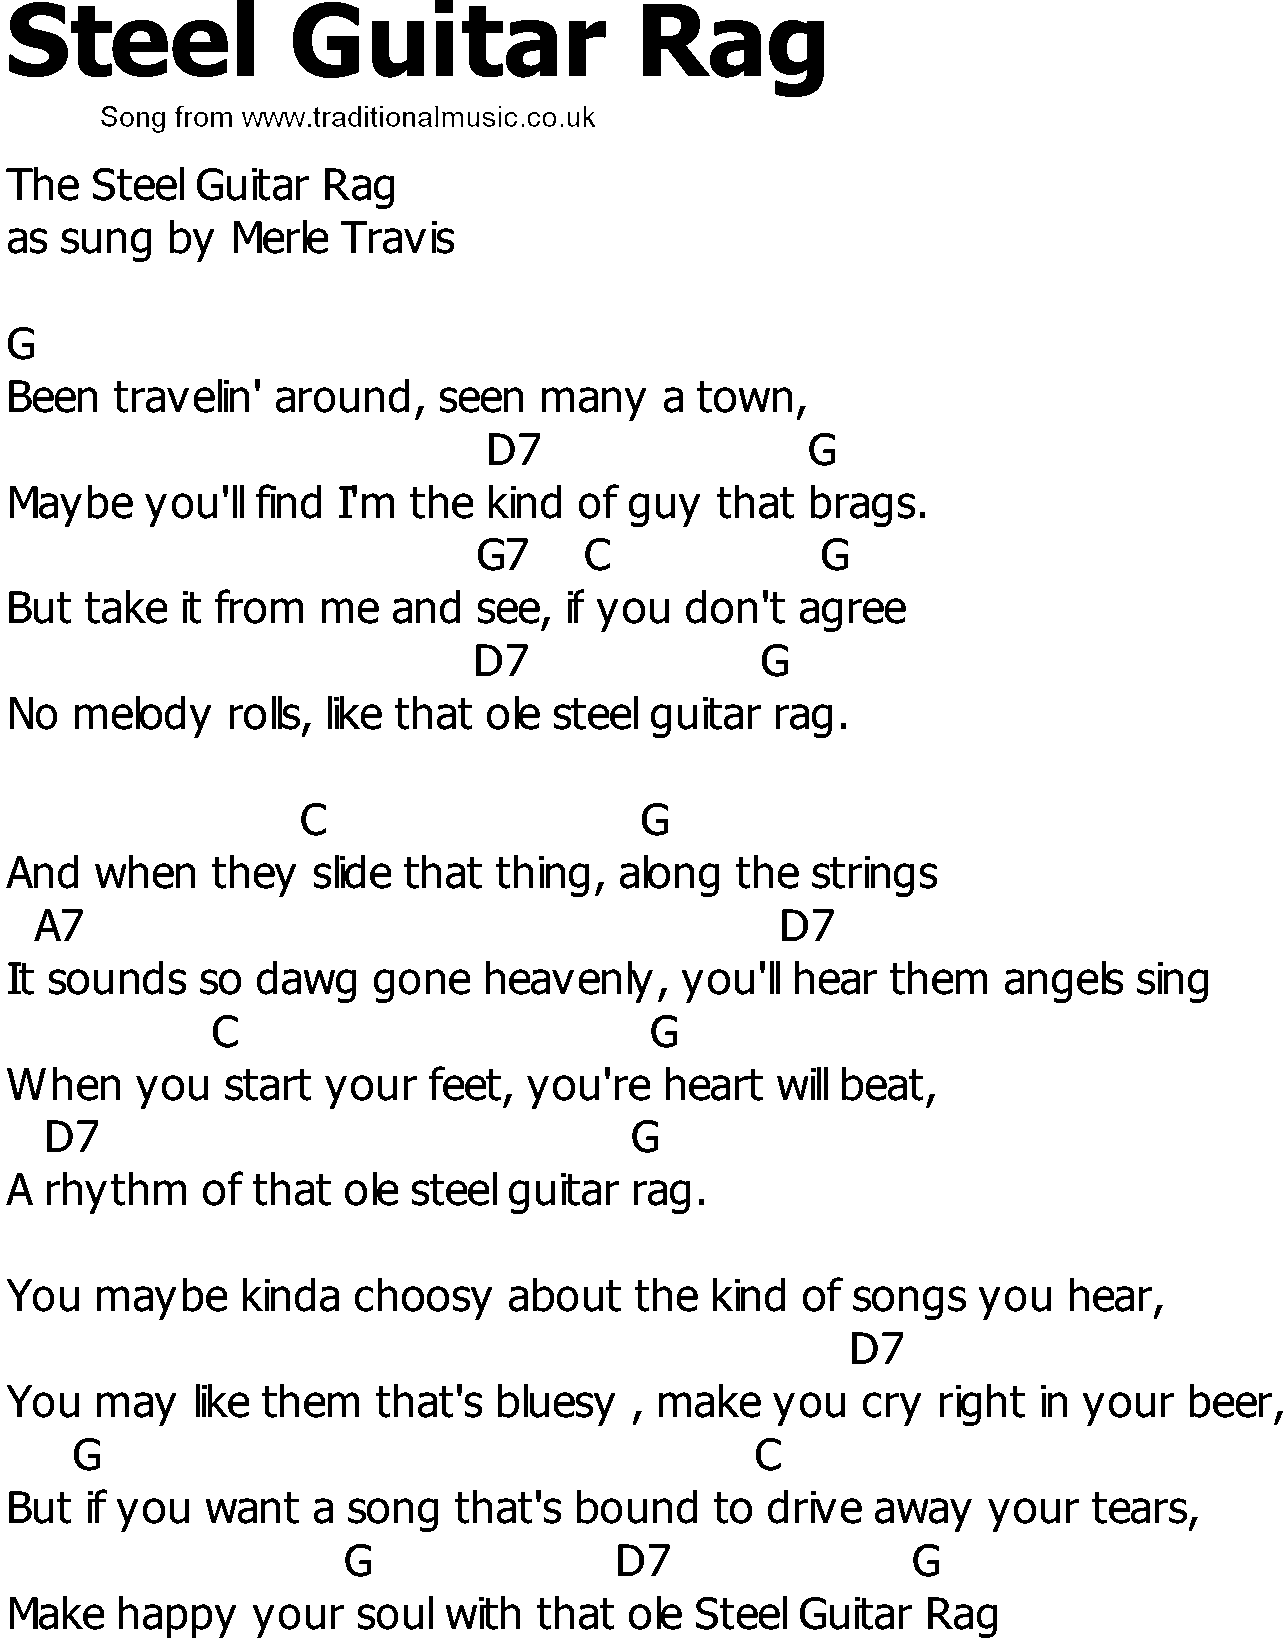 Old Country song lyrics with chords - Steel Guitar Rag